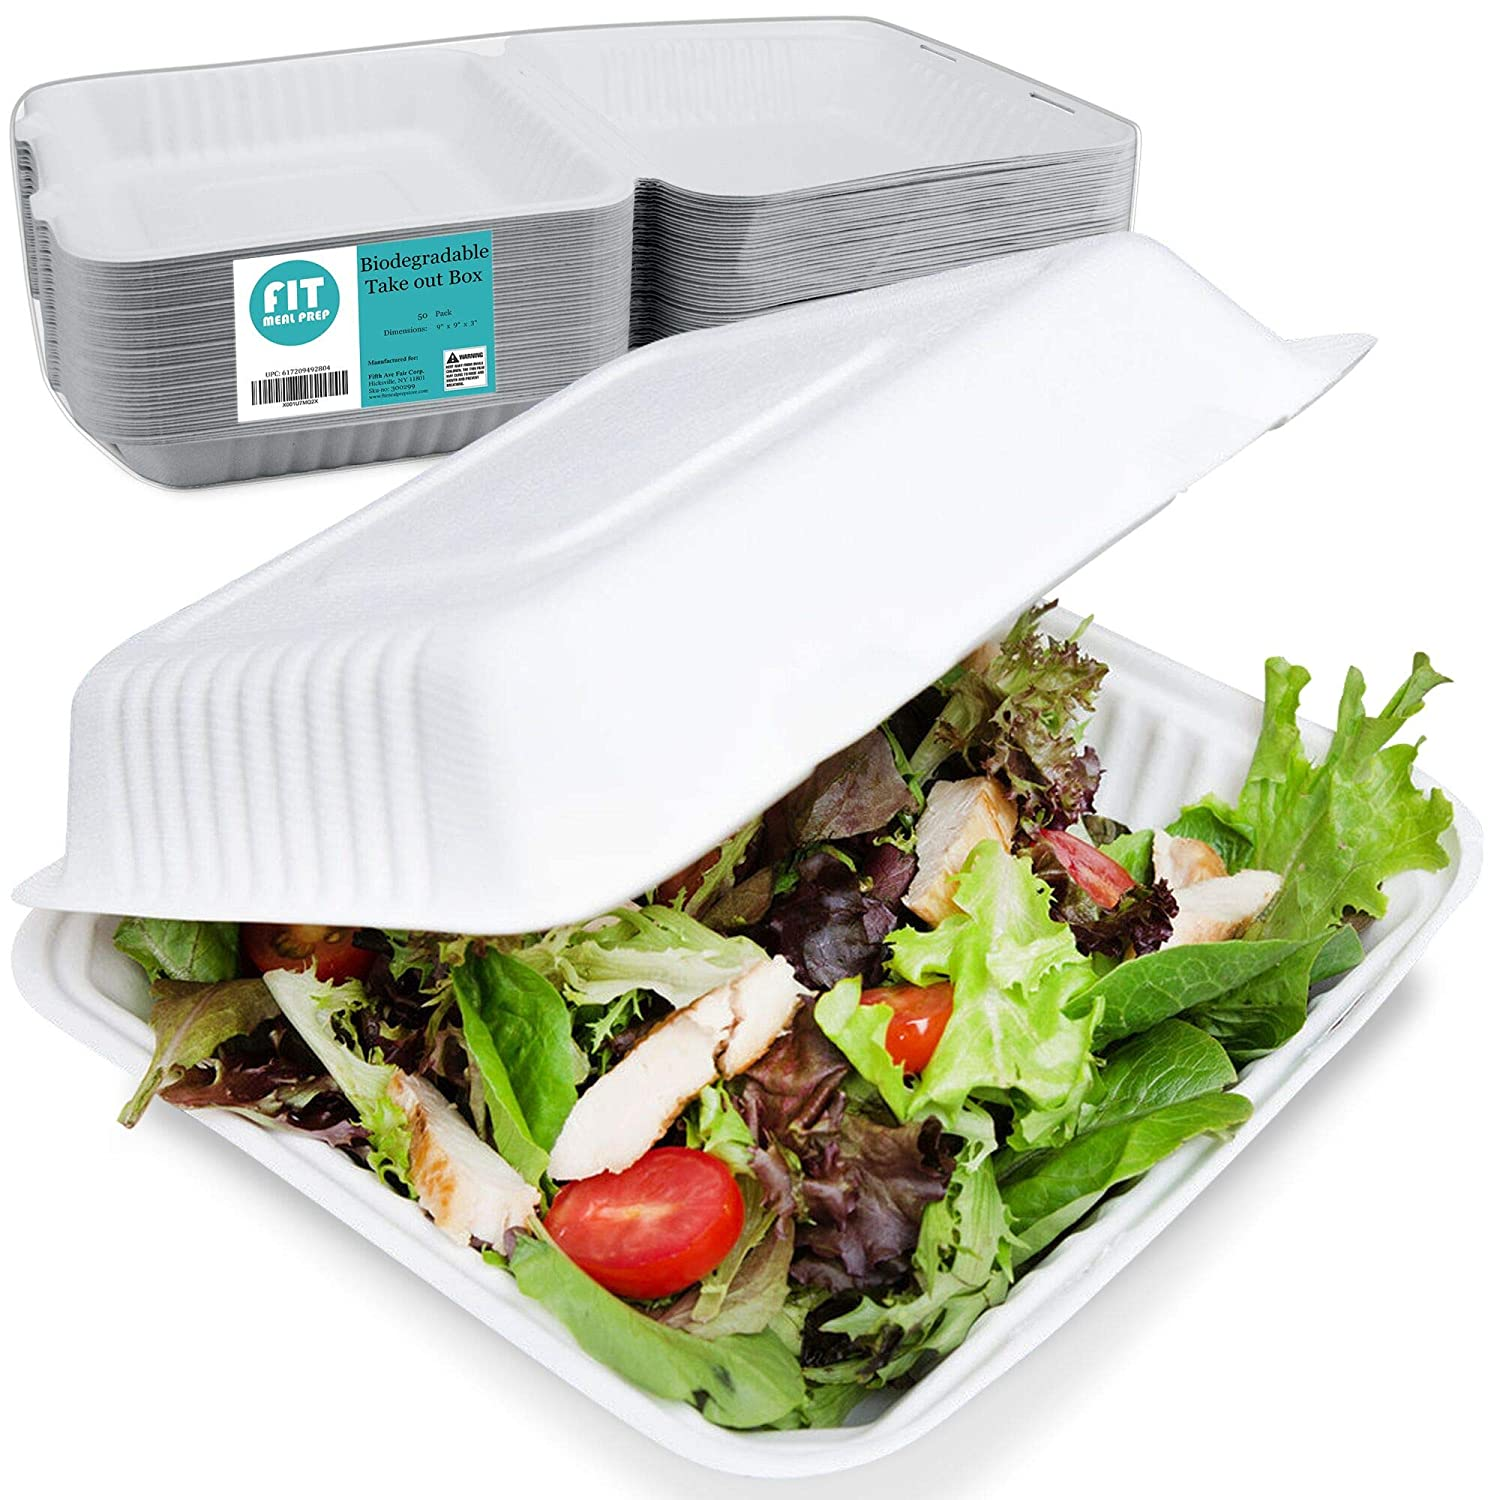 """[50 Pack] 9x9x3"""" Clamshell Food Containers with 1 Compartment - Compostable Take Out Box, 100% Biodegradable Sugarcane, Styrofoam and Plastic Alternative, Microwave Safe, to Go Lunch and Meals"""